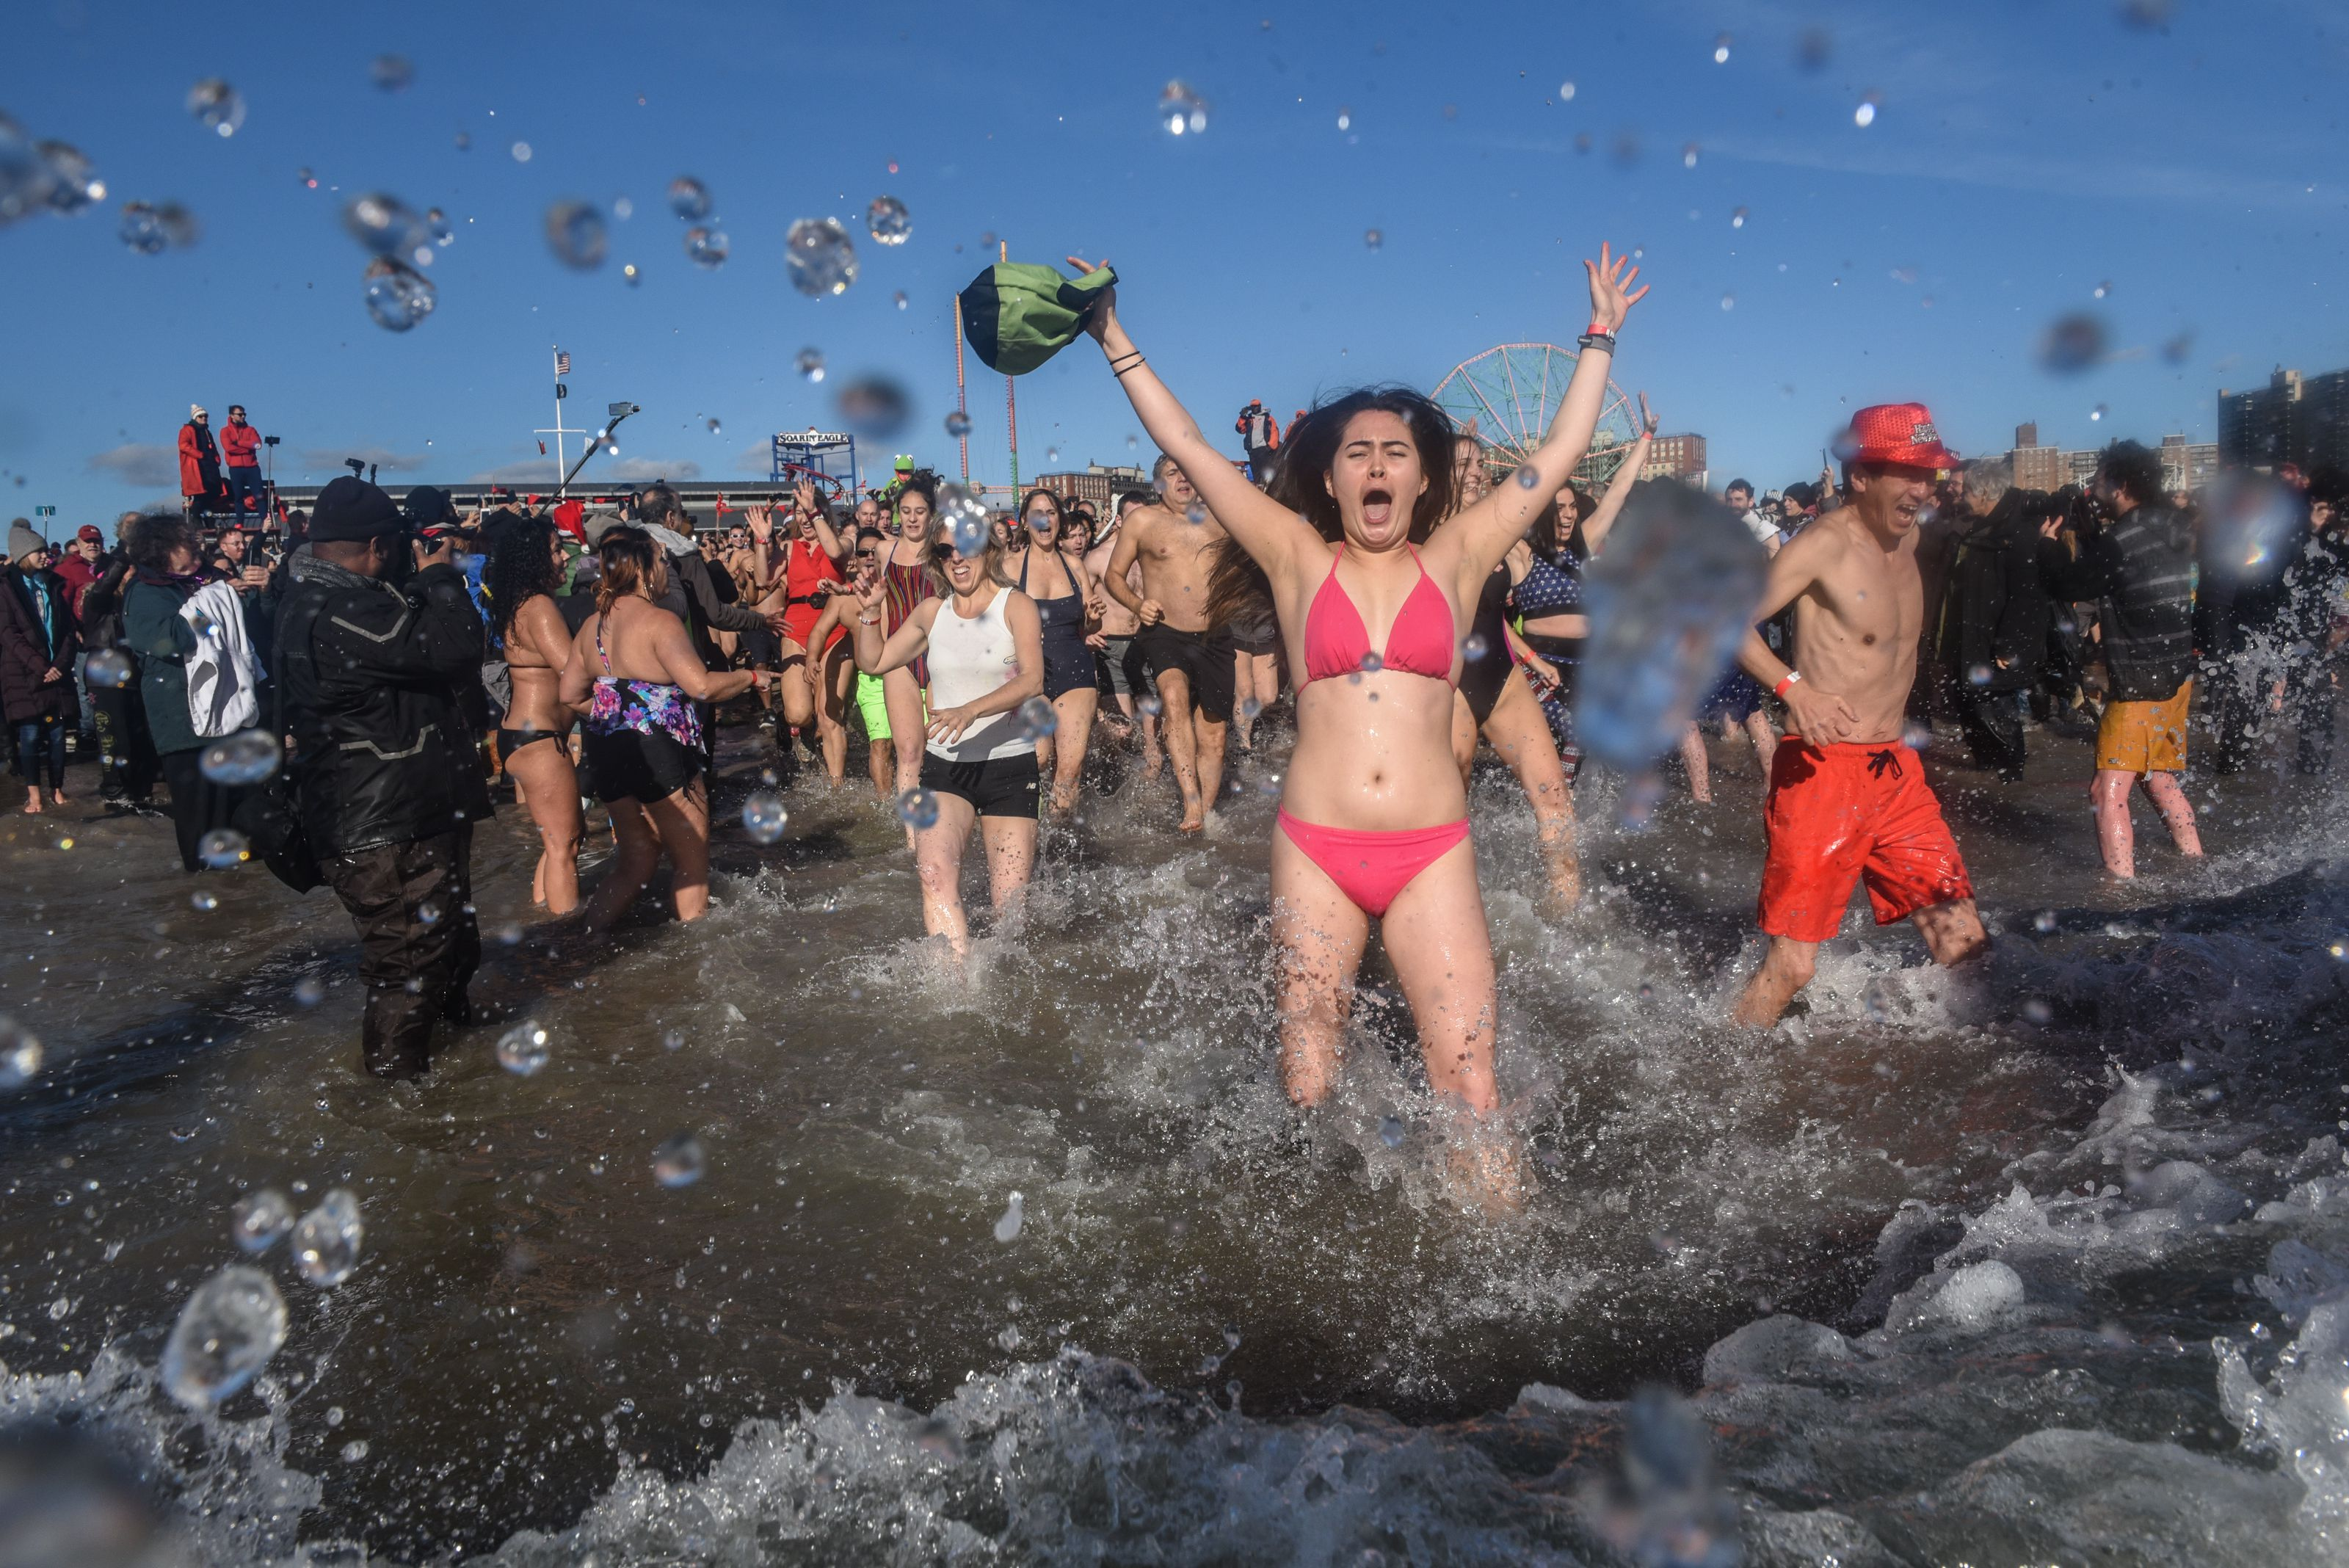 Scores Of Swimmers Take Icy Plunge At Annual Coney Island Polar Bear Club Swim